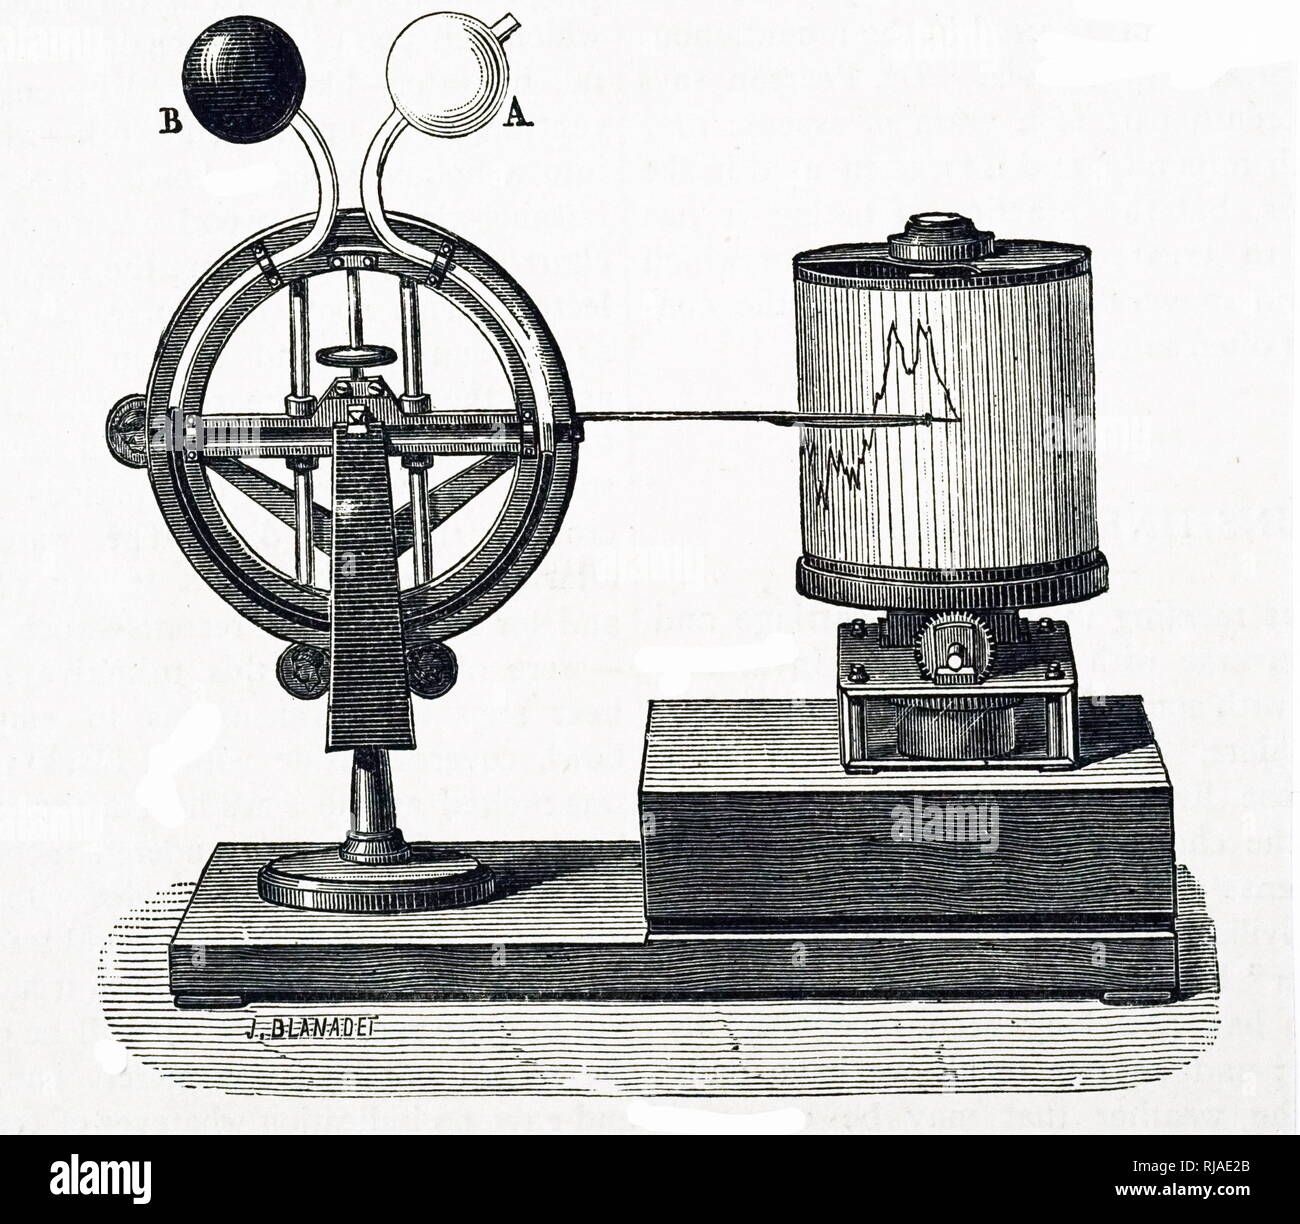 Illustration depicting Winstanley's recording radiograph, used to record and measure sunshine. 1896. - Stock Image